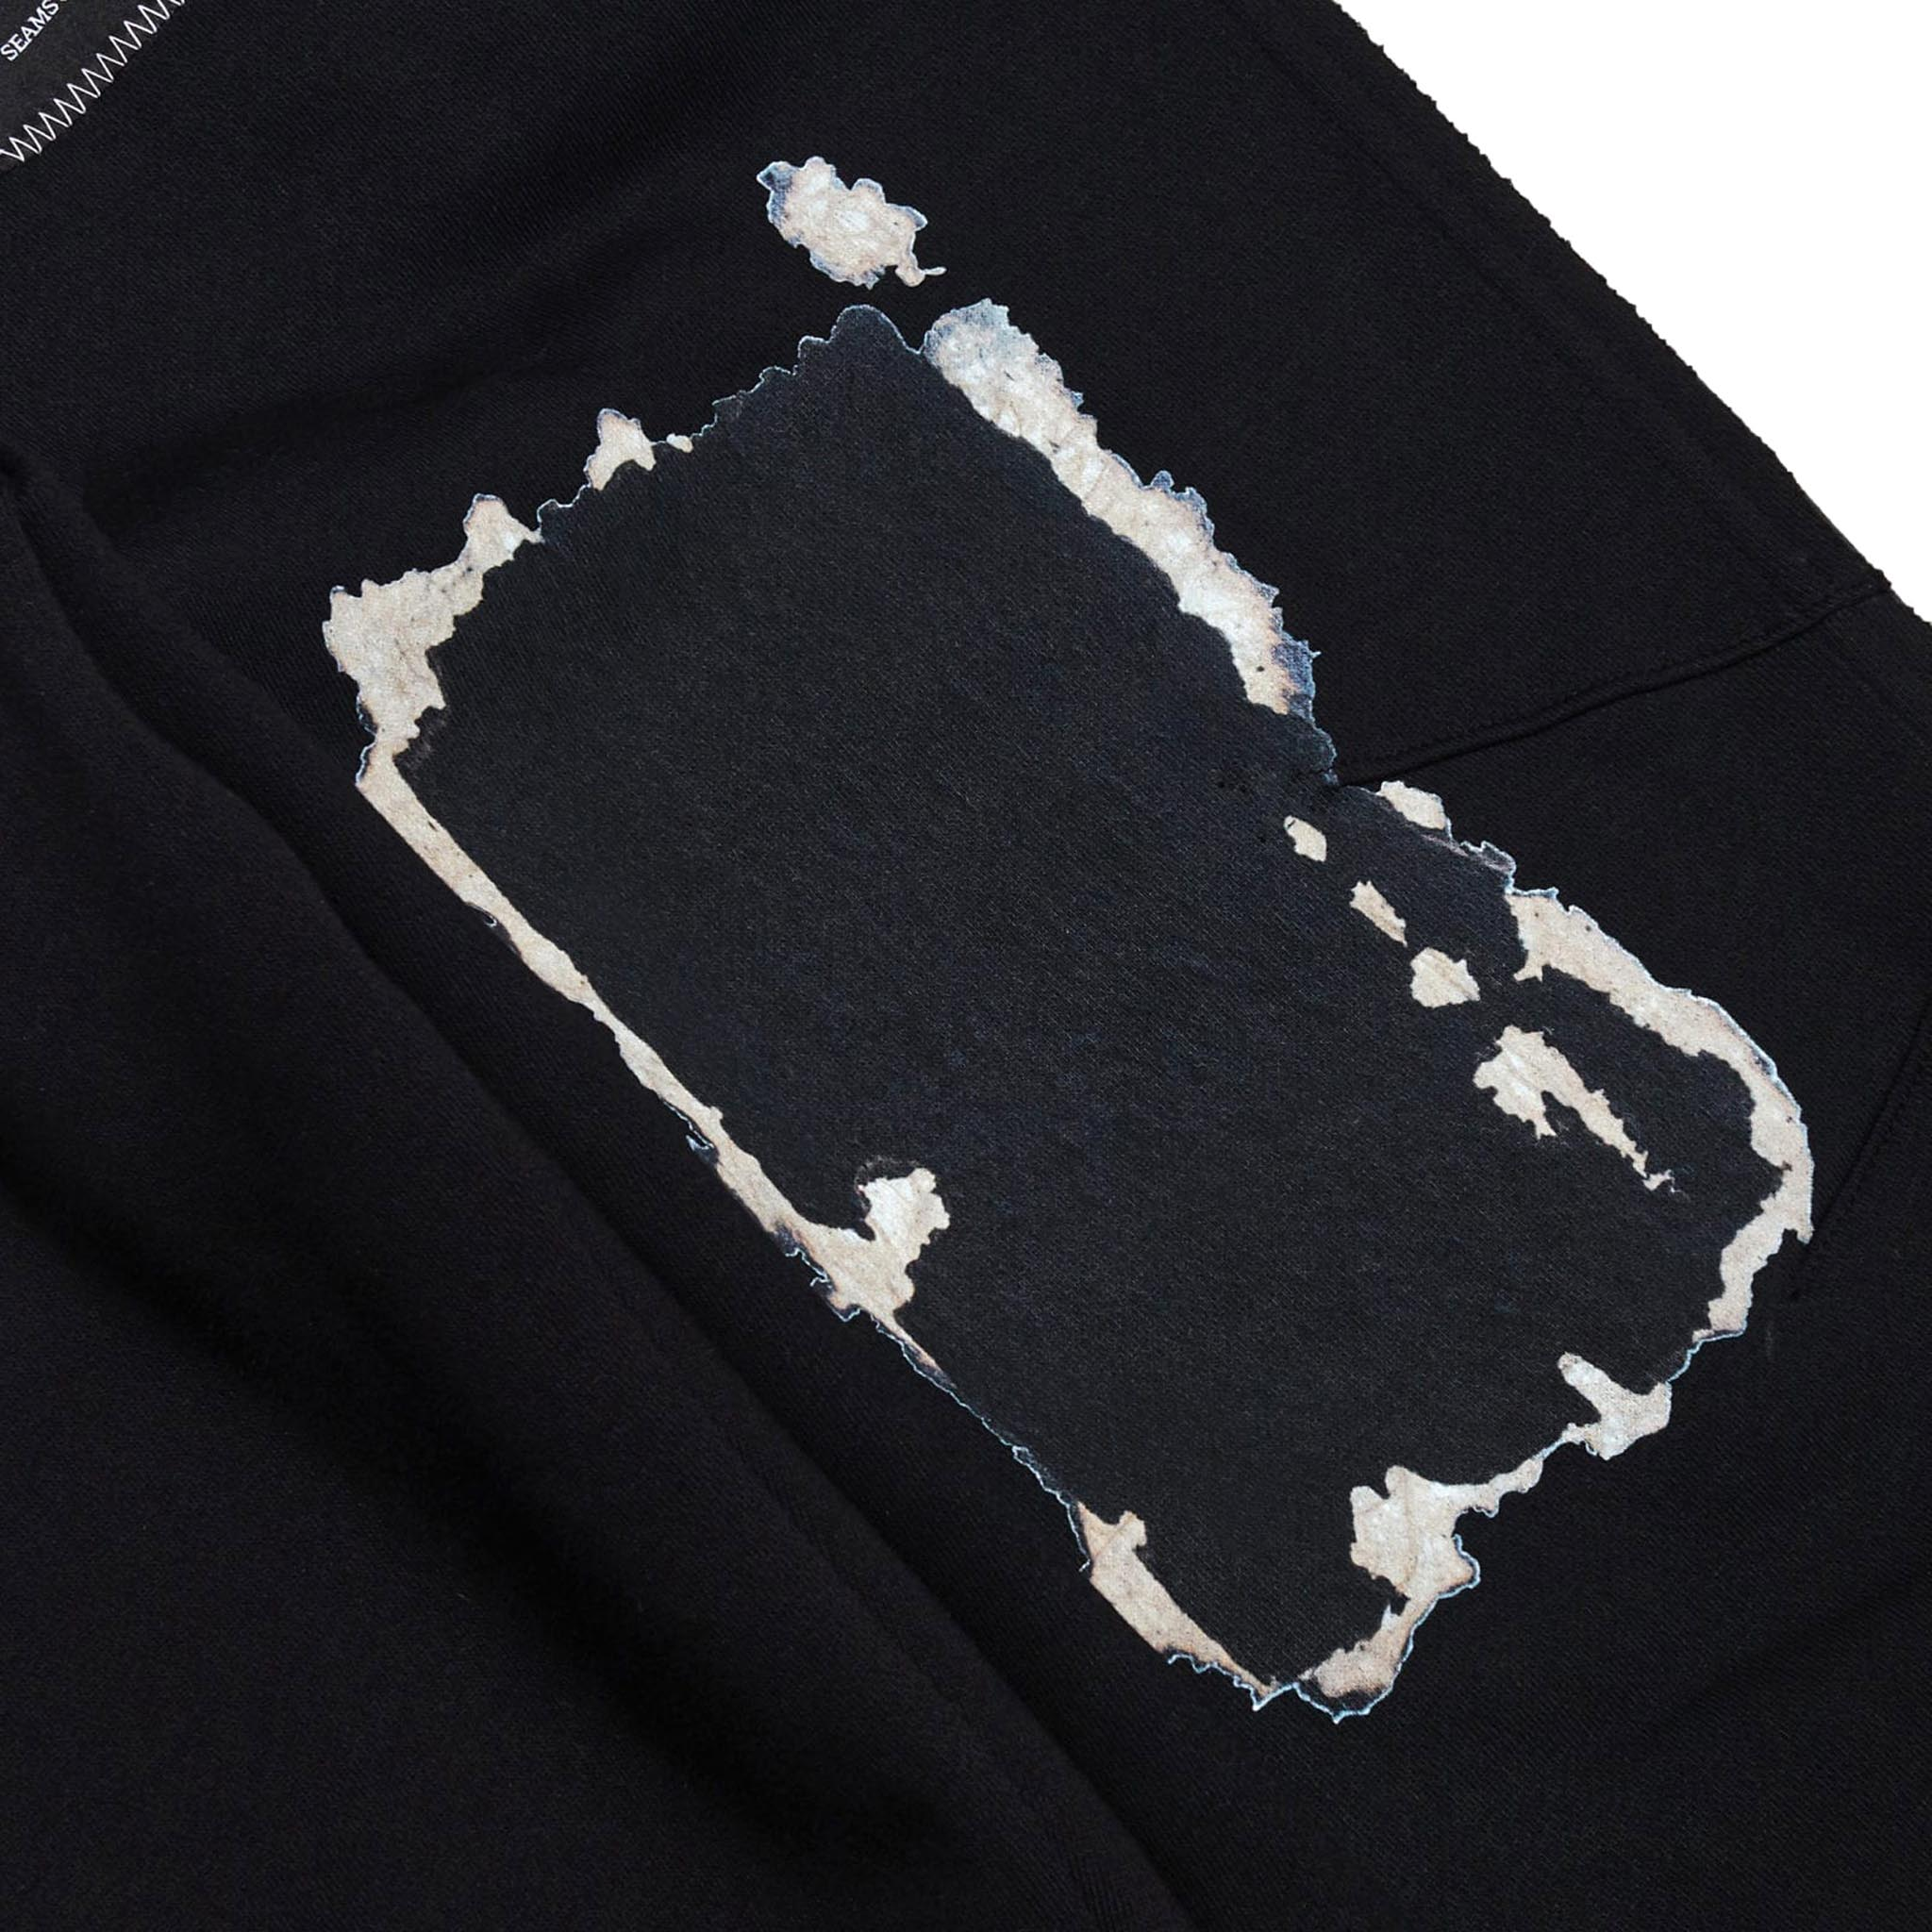 IISE R/S Sweatpant Black